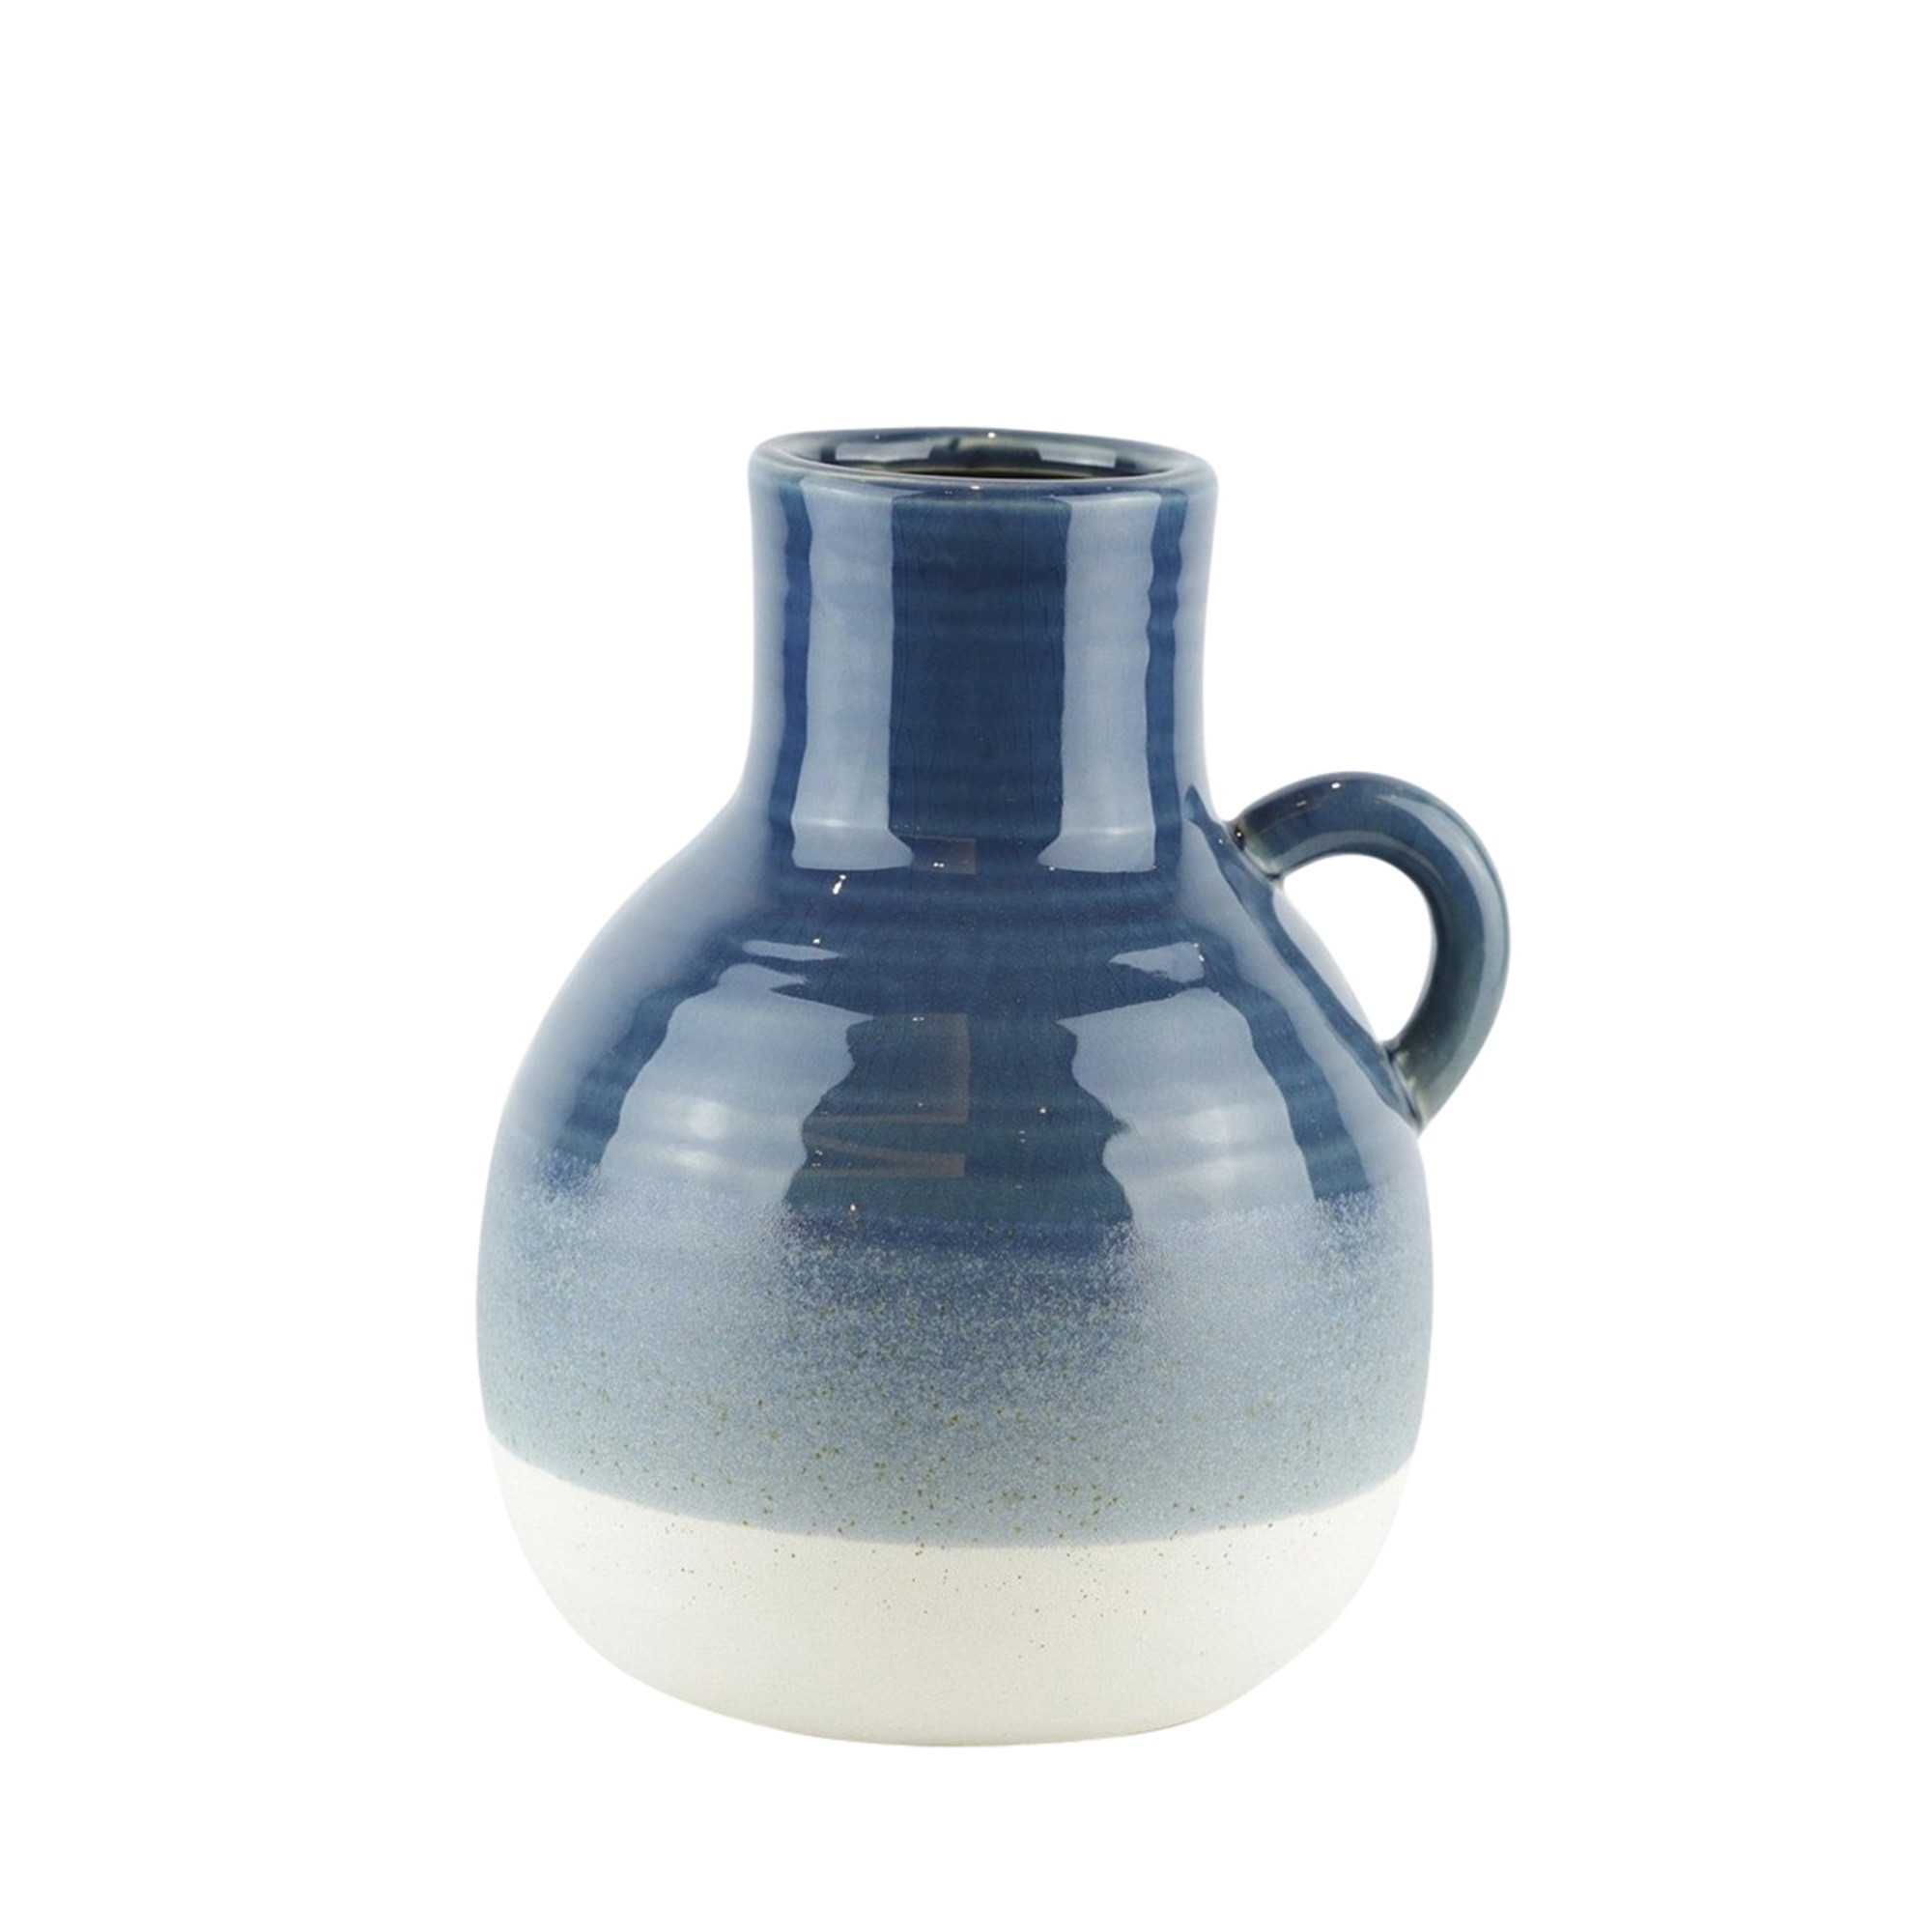 Details About Bellied Jug Shape Ceramic Vase With Ribbed Pattern Small Blue And White